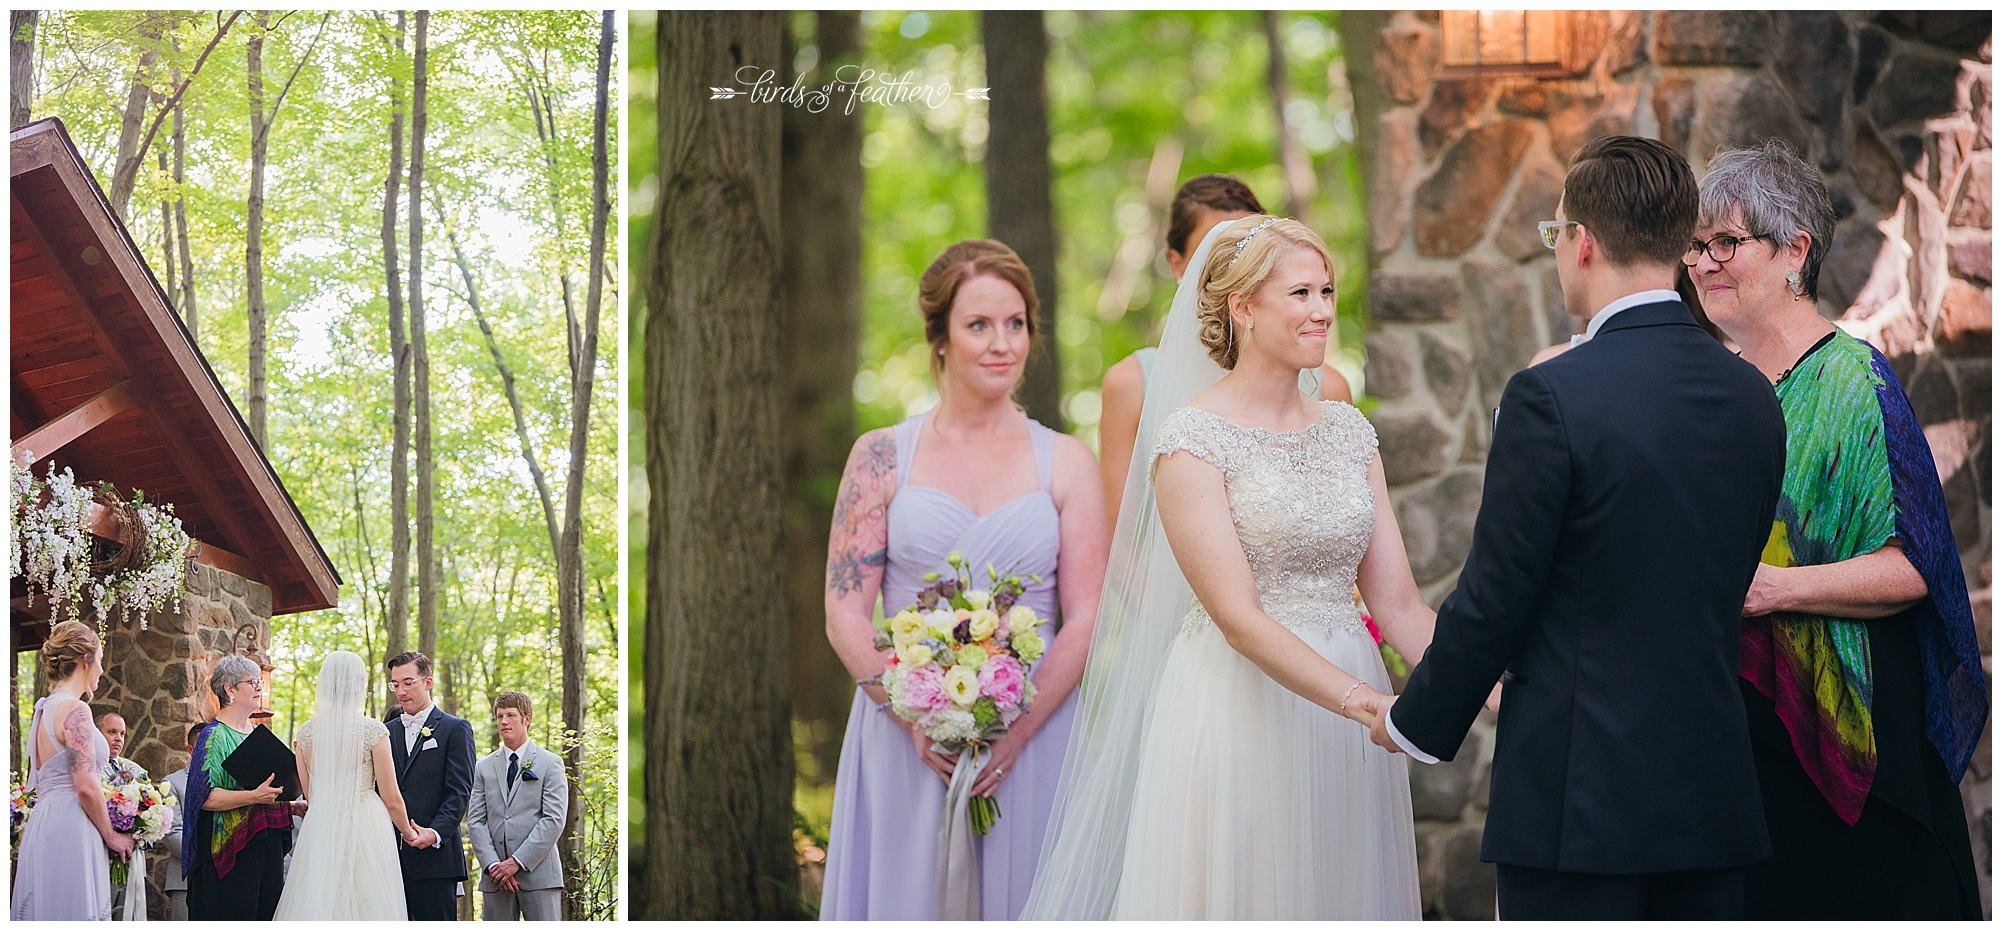 Birds of a Feather Photography, Stroudsmoor Country Inn, Stroudsburg Pa, Wedding Photography, Wedding Photographer